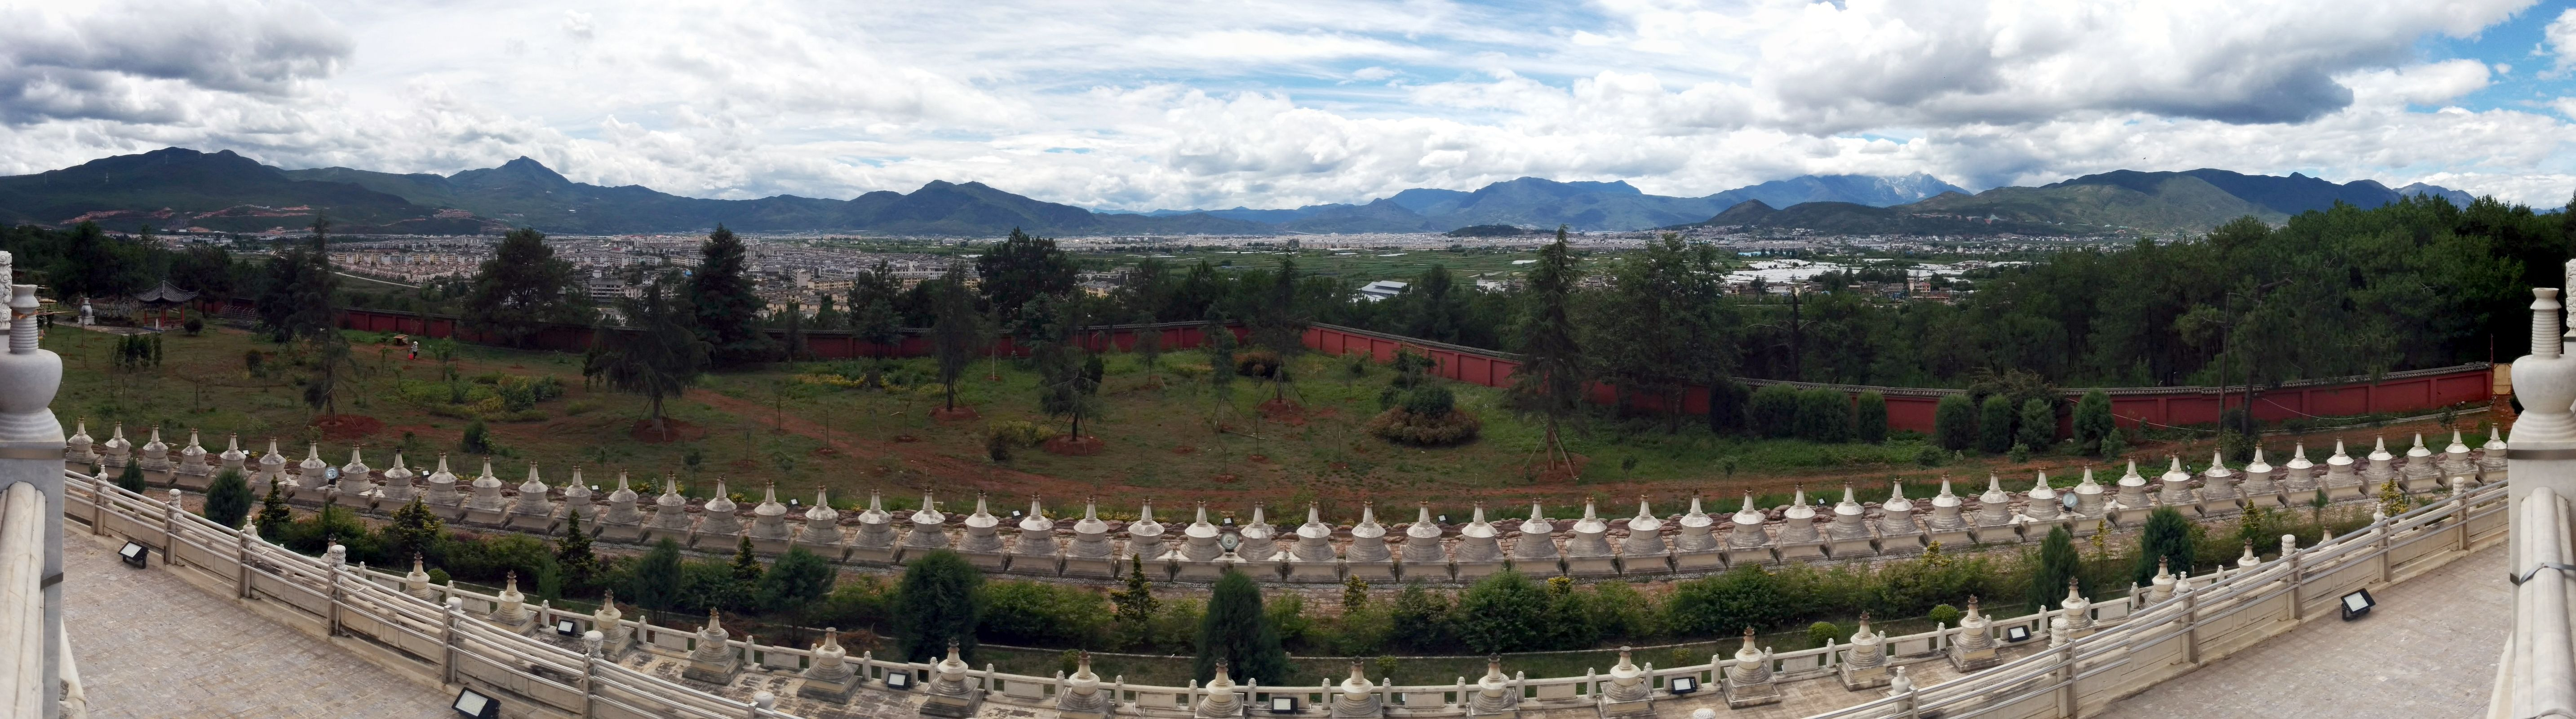 Looking out from the top of the Golden Pagoda, with a panoramic view of Lijiang city